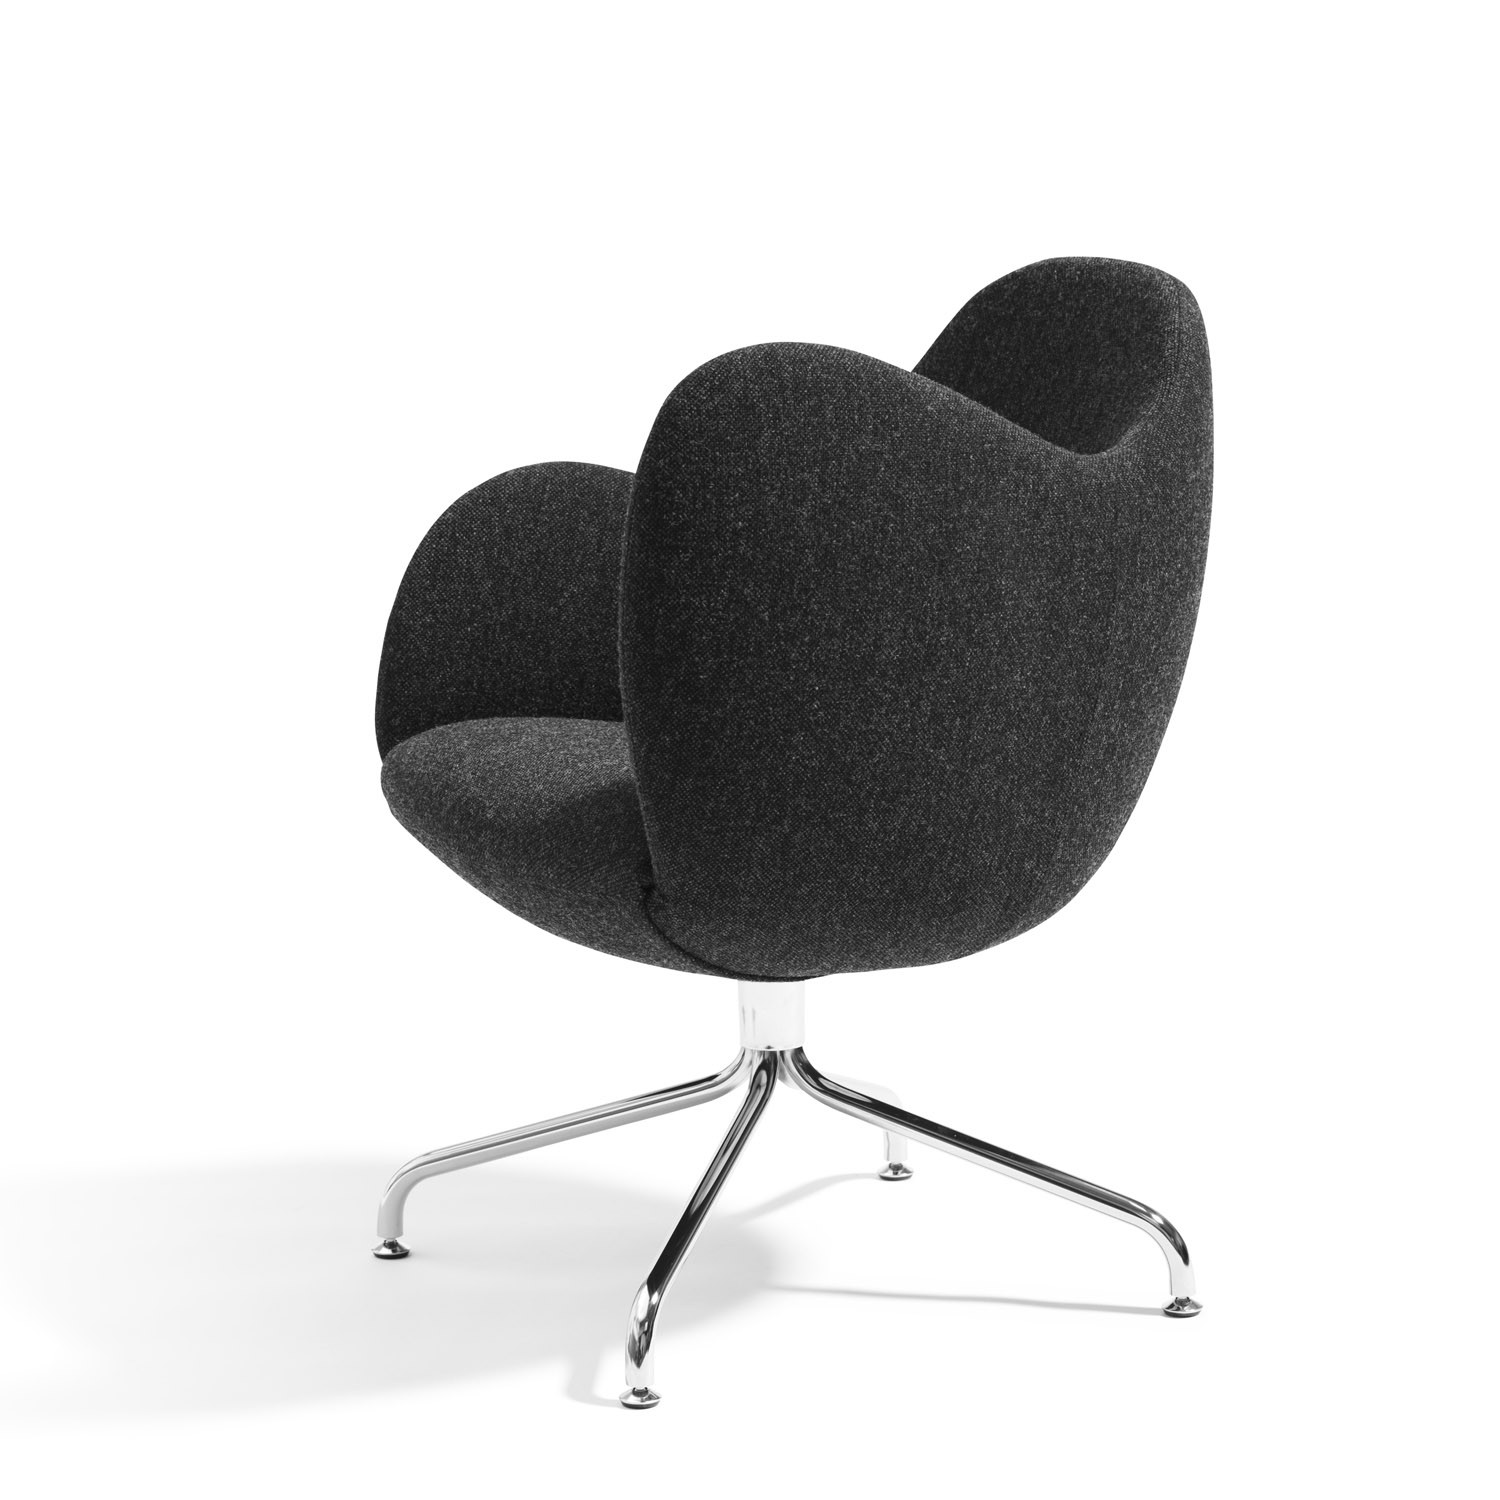 Wilmer S-O55 Chair from Bla Station